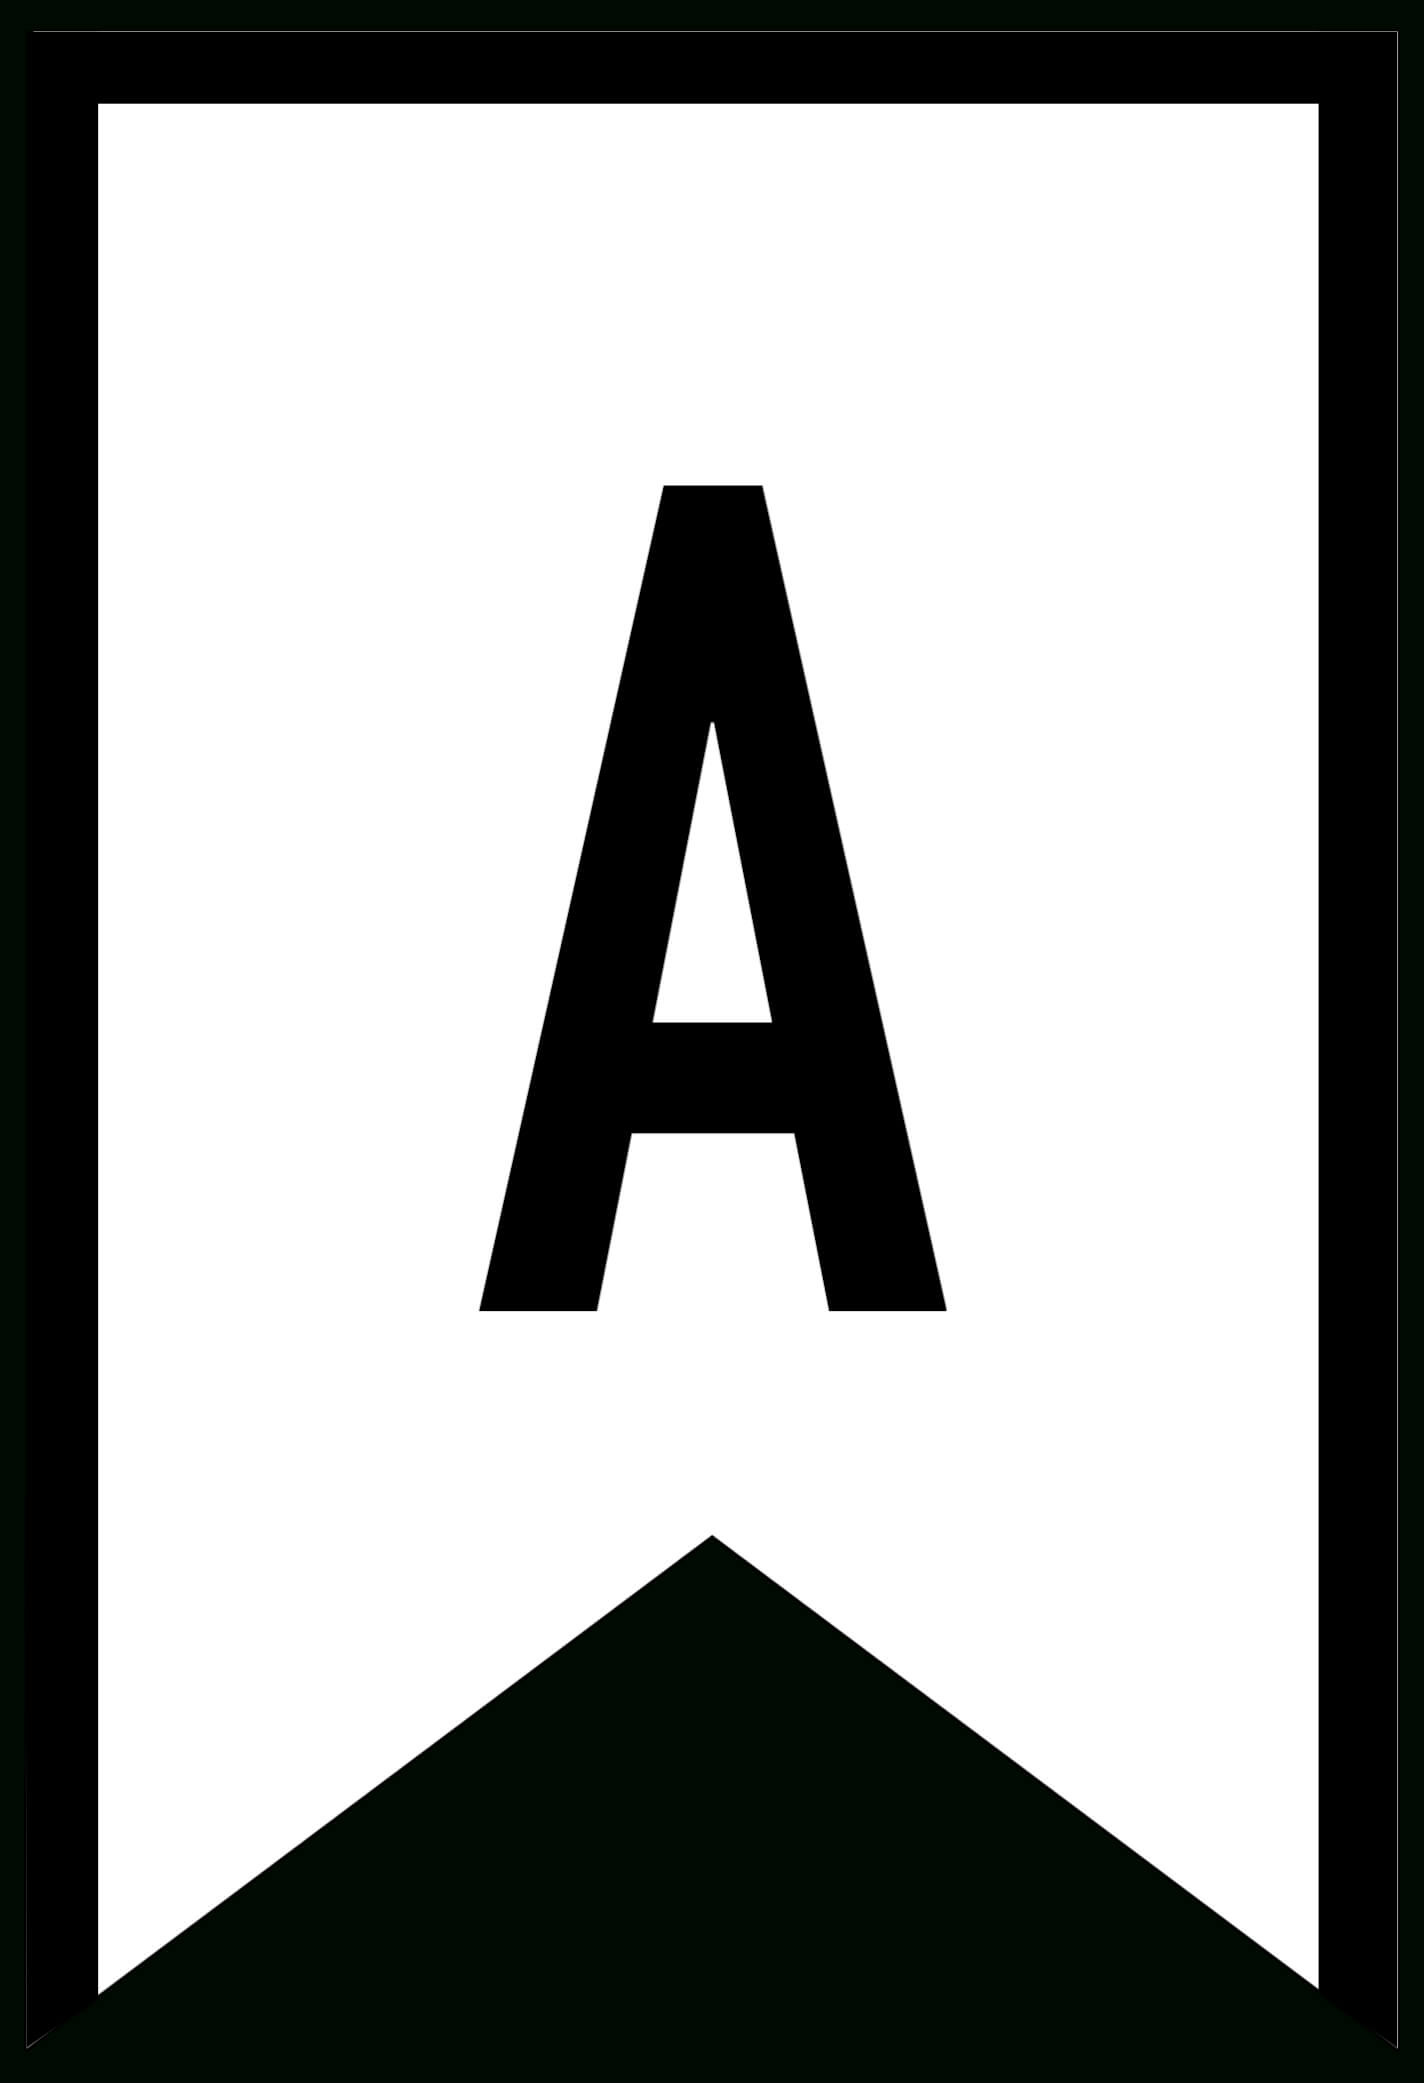 Banner Templates Free Printable Abc Letters - Paper Trail Design pertaining to Printable Letter Templates For Banners